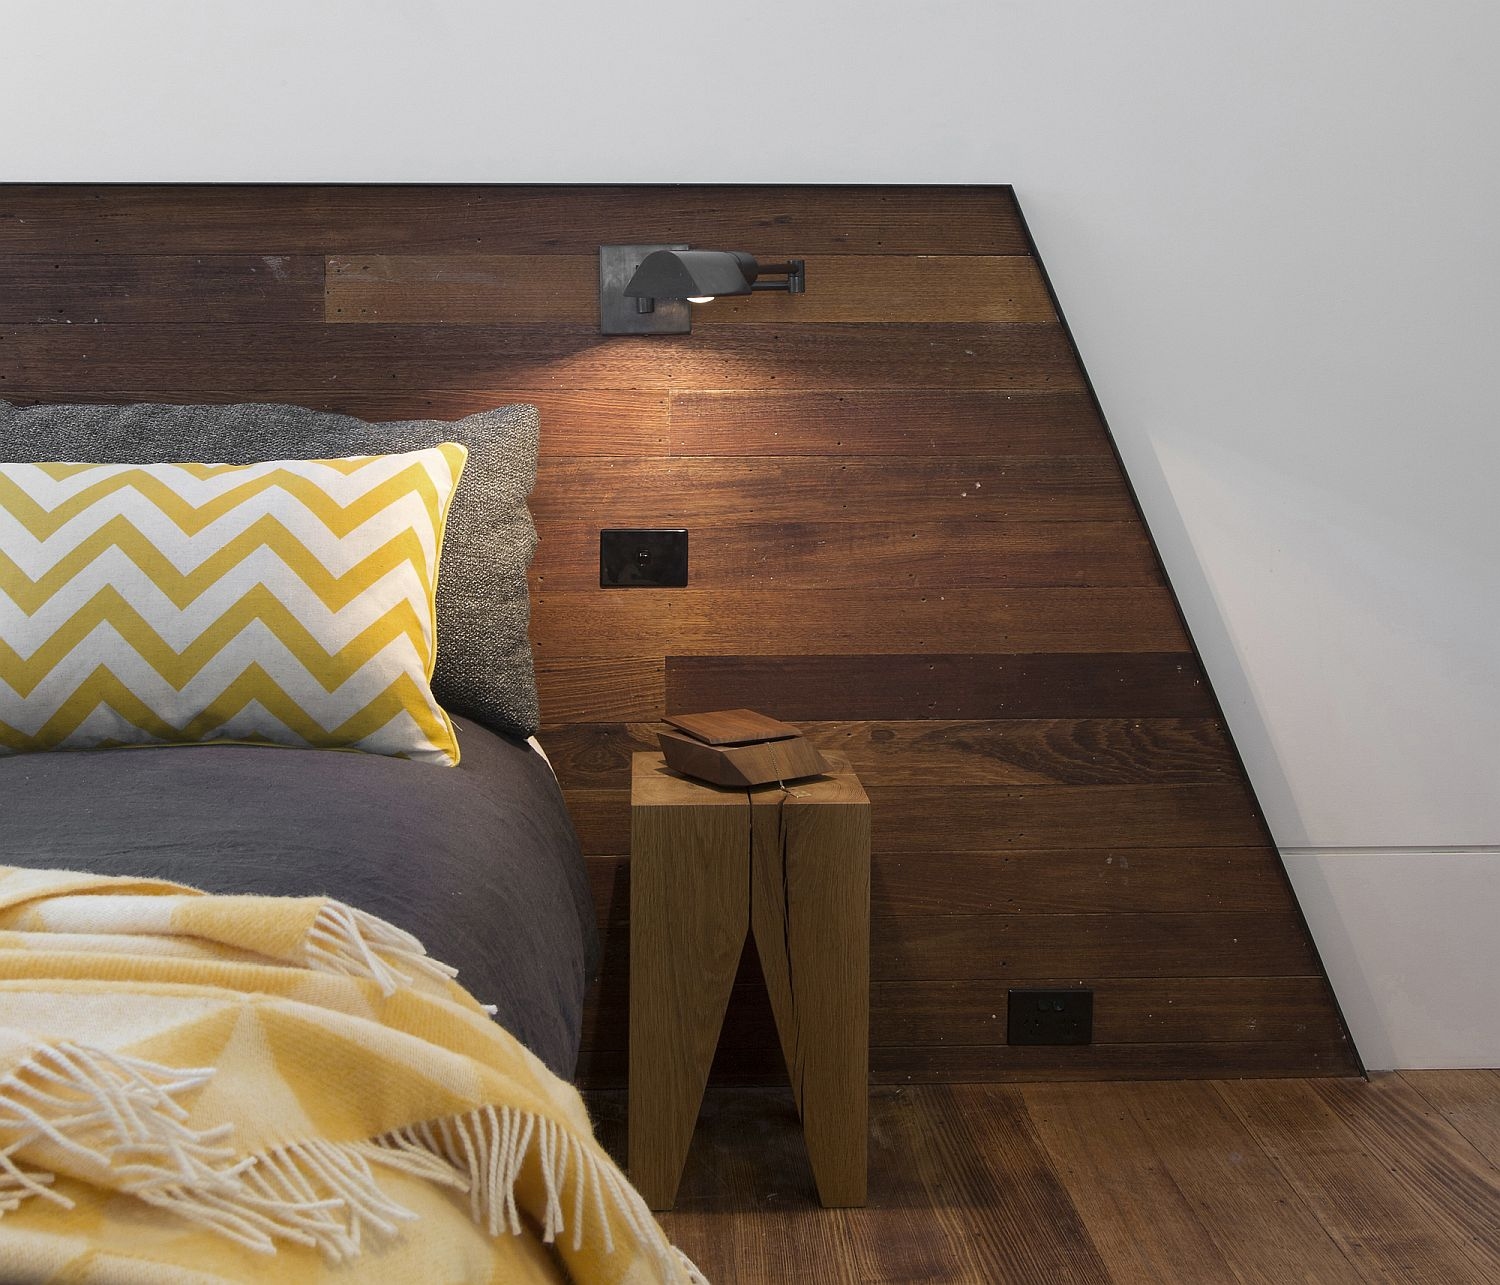 Accent pillow adds a bit of yellow and chevron pattern to the bedroom